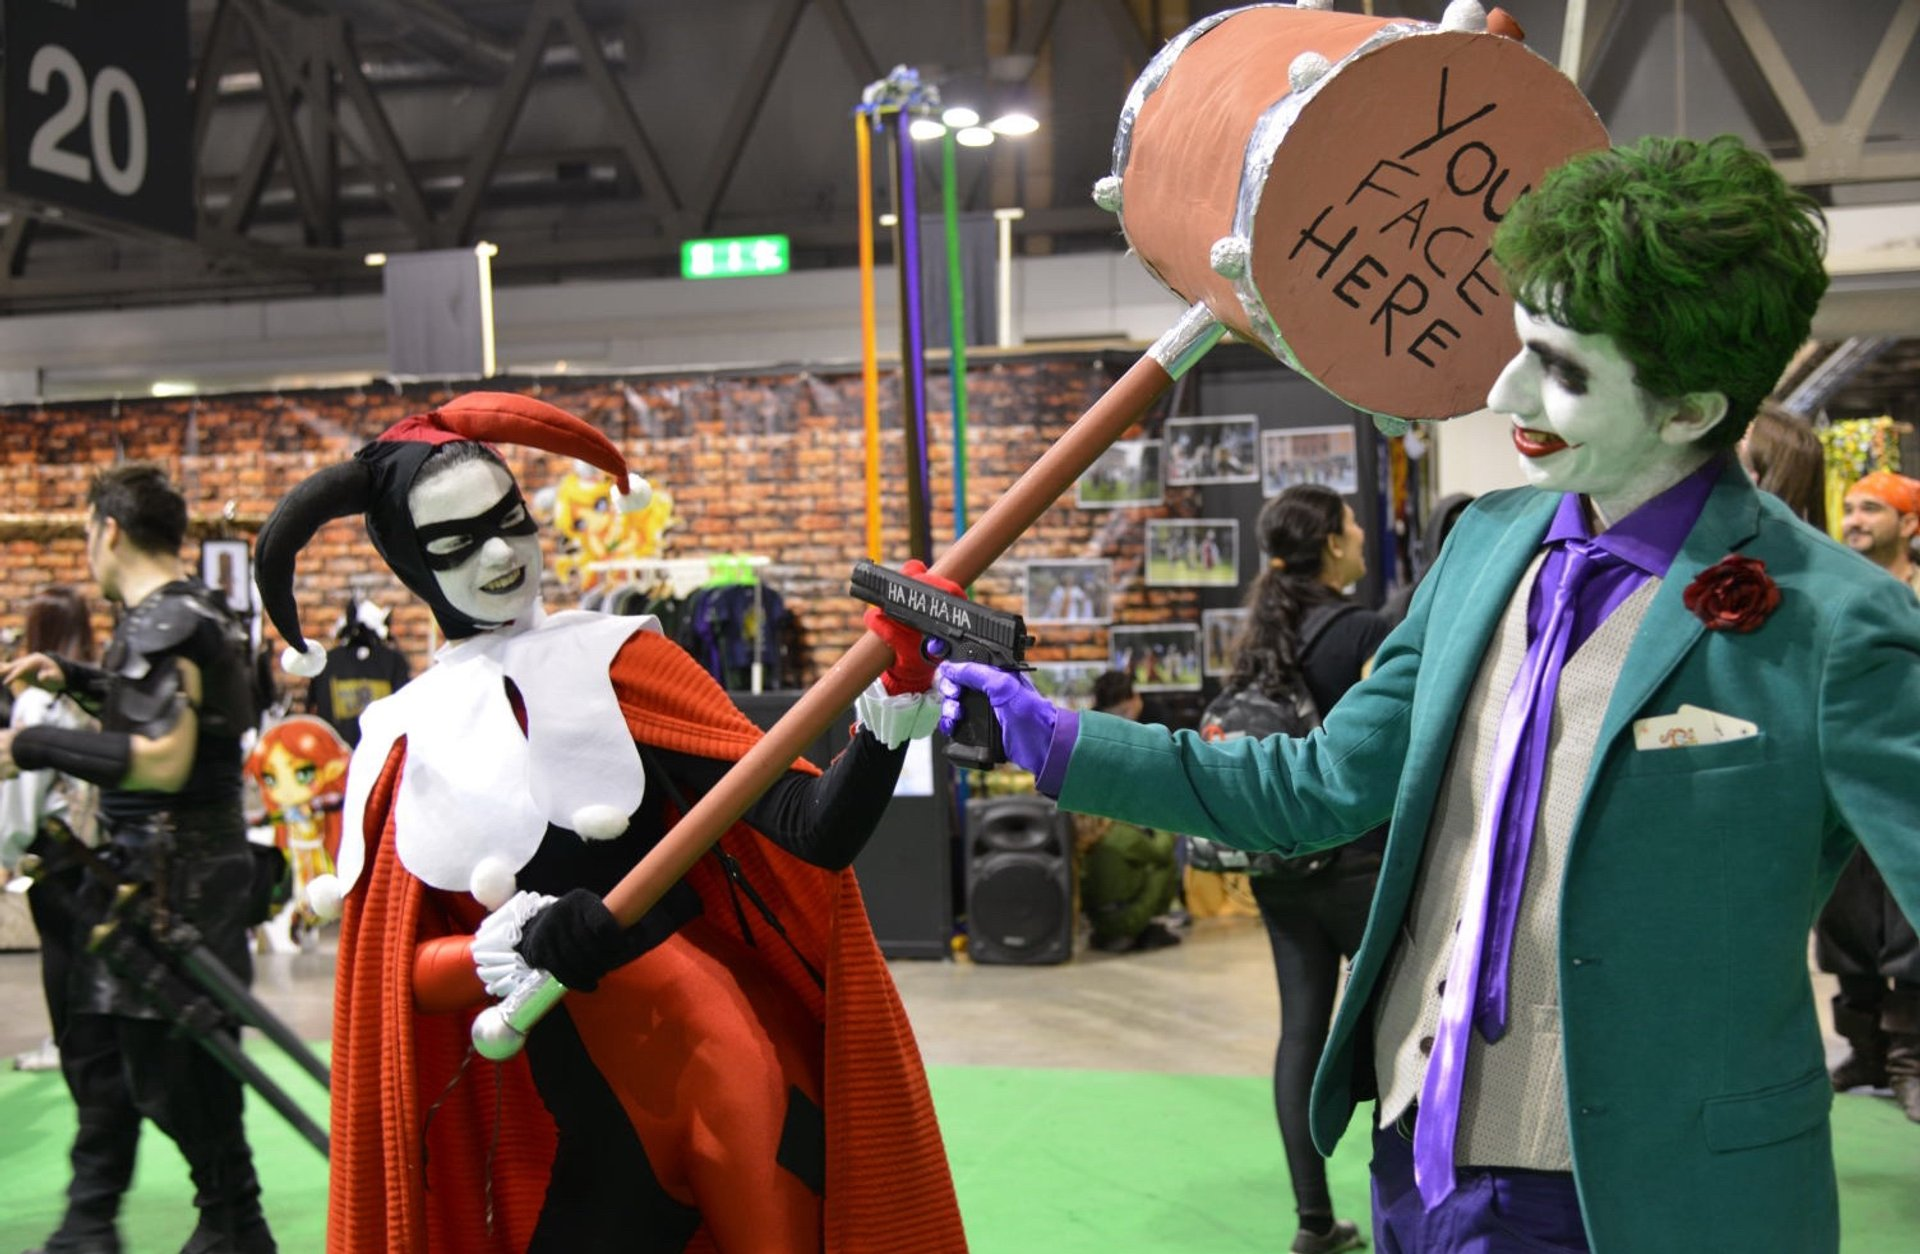 Cartoomics in Milan 2020 - Best Time